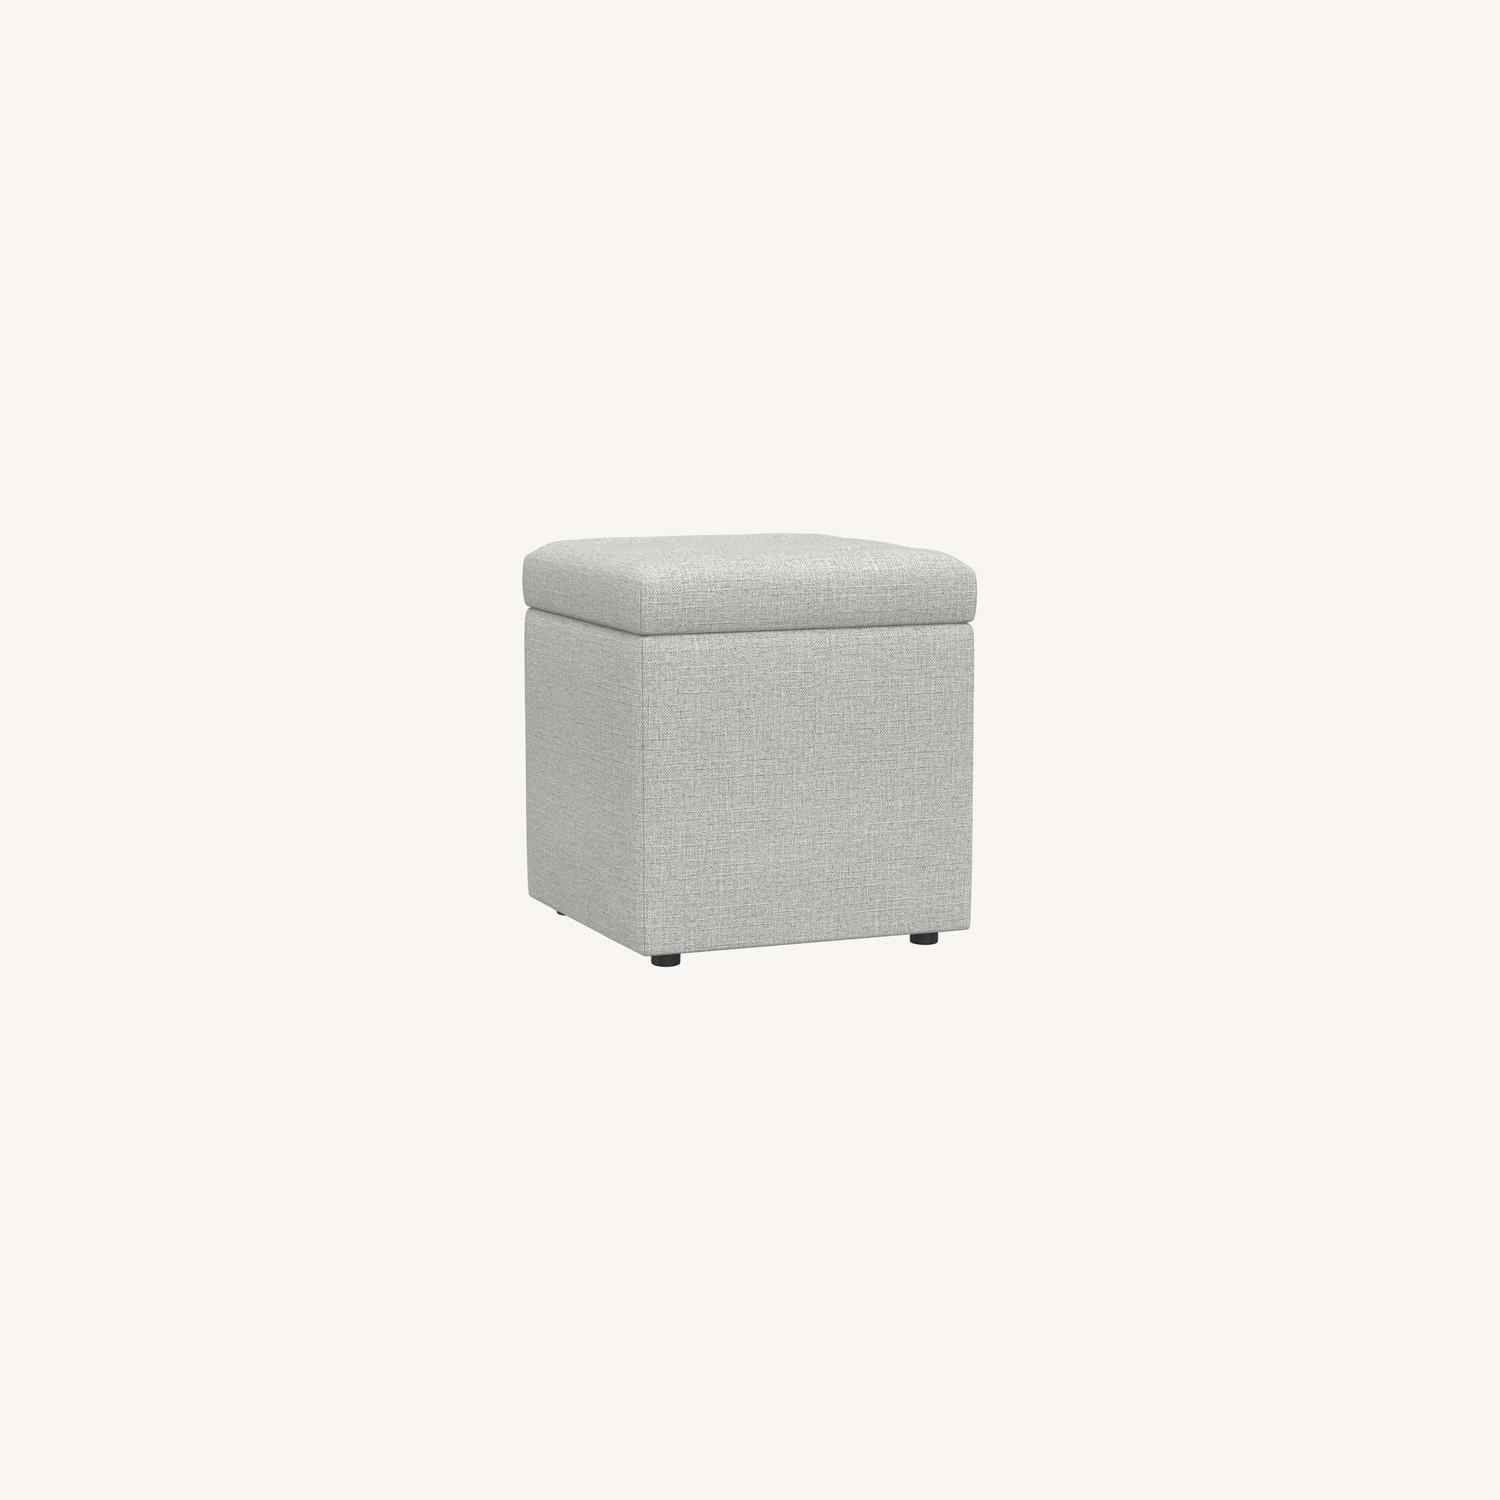 Pottery Barn Marlow Upholstered Storage Cube - image-0